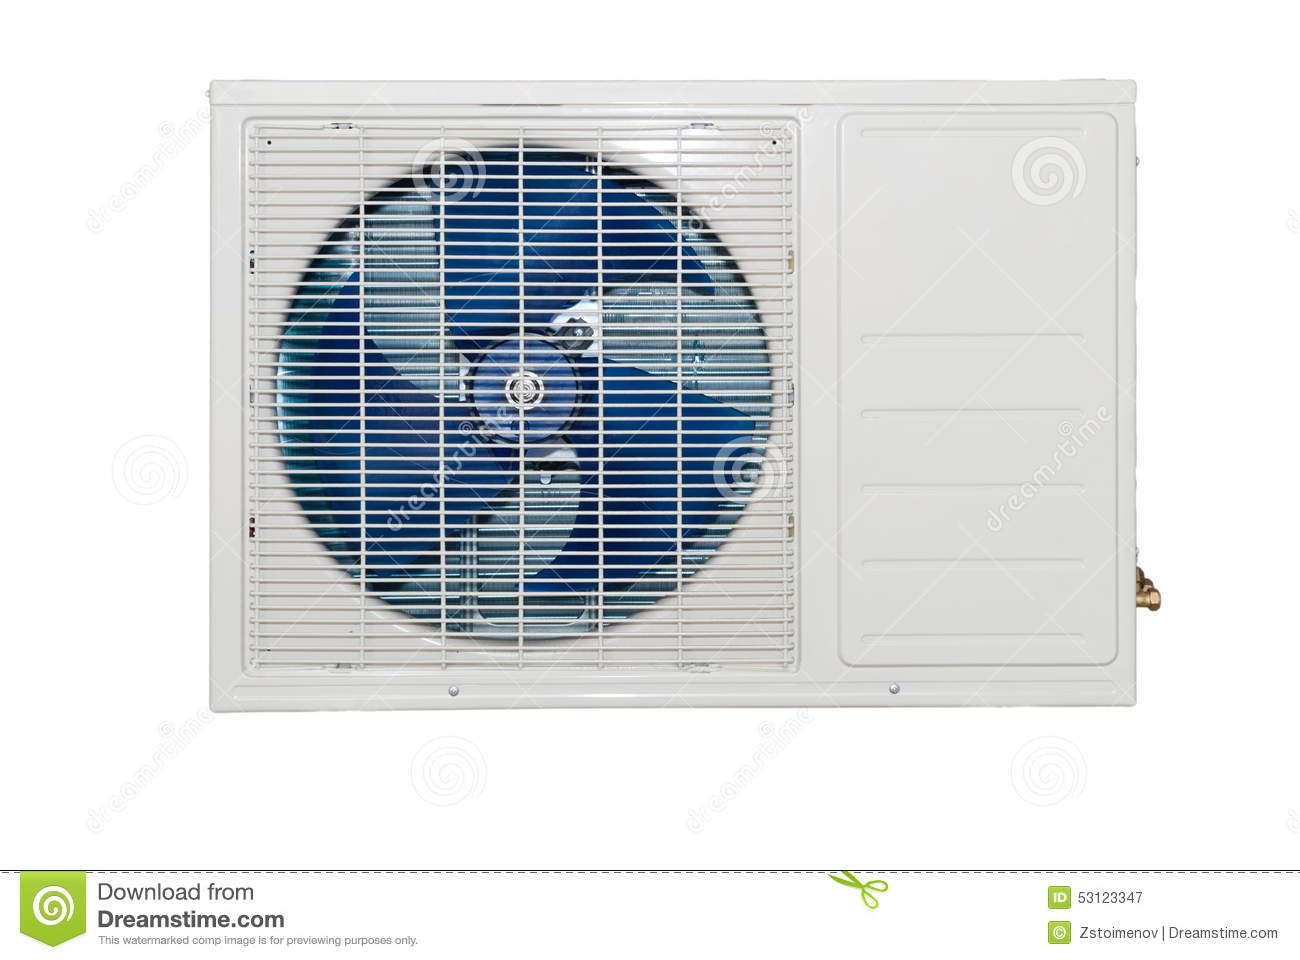 whote air conditioner external compressor stock image - image of